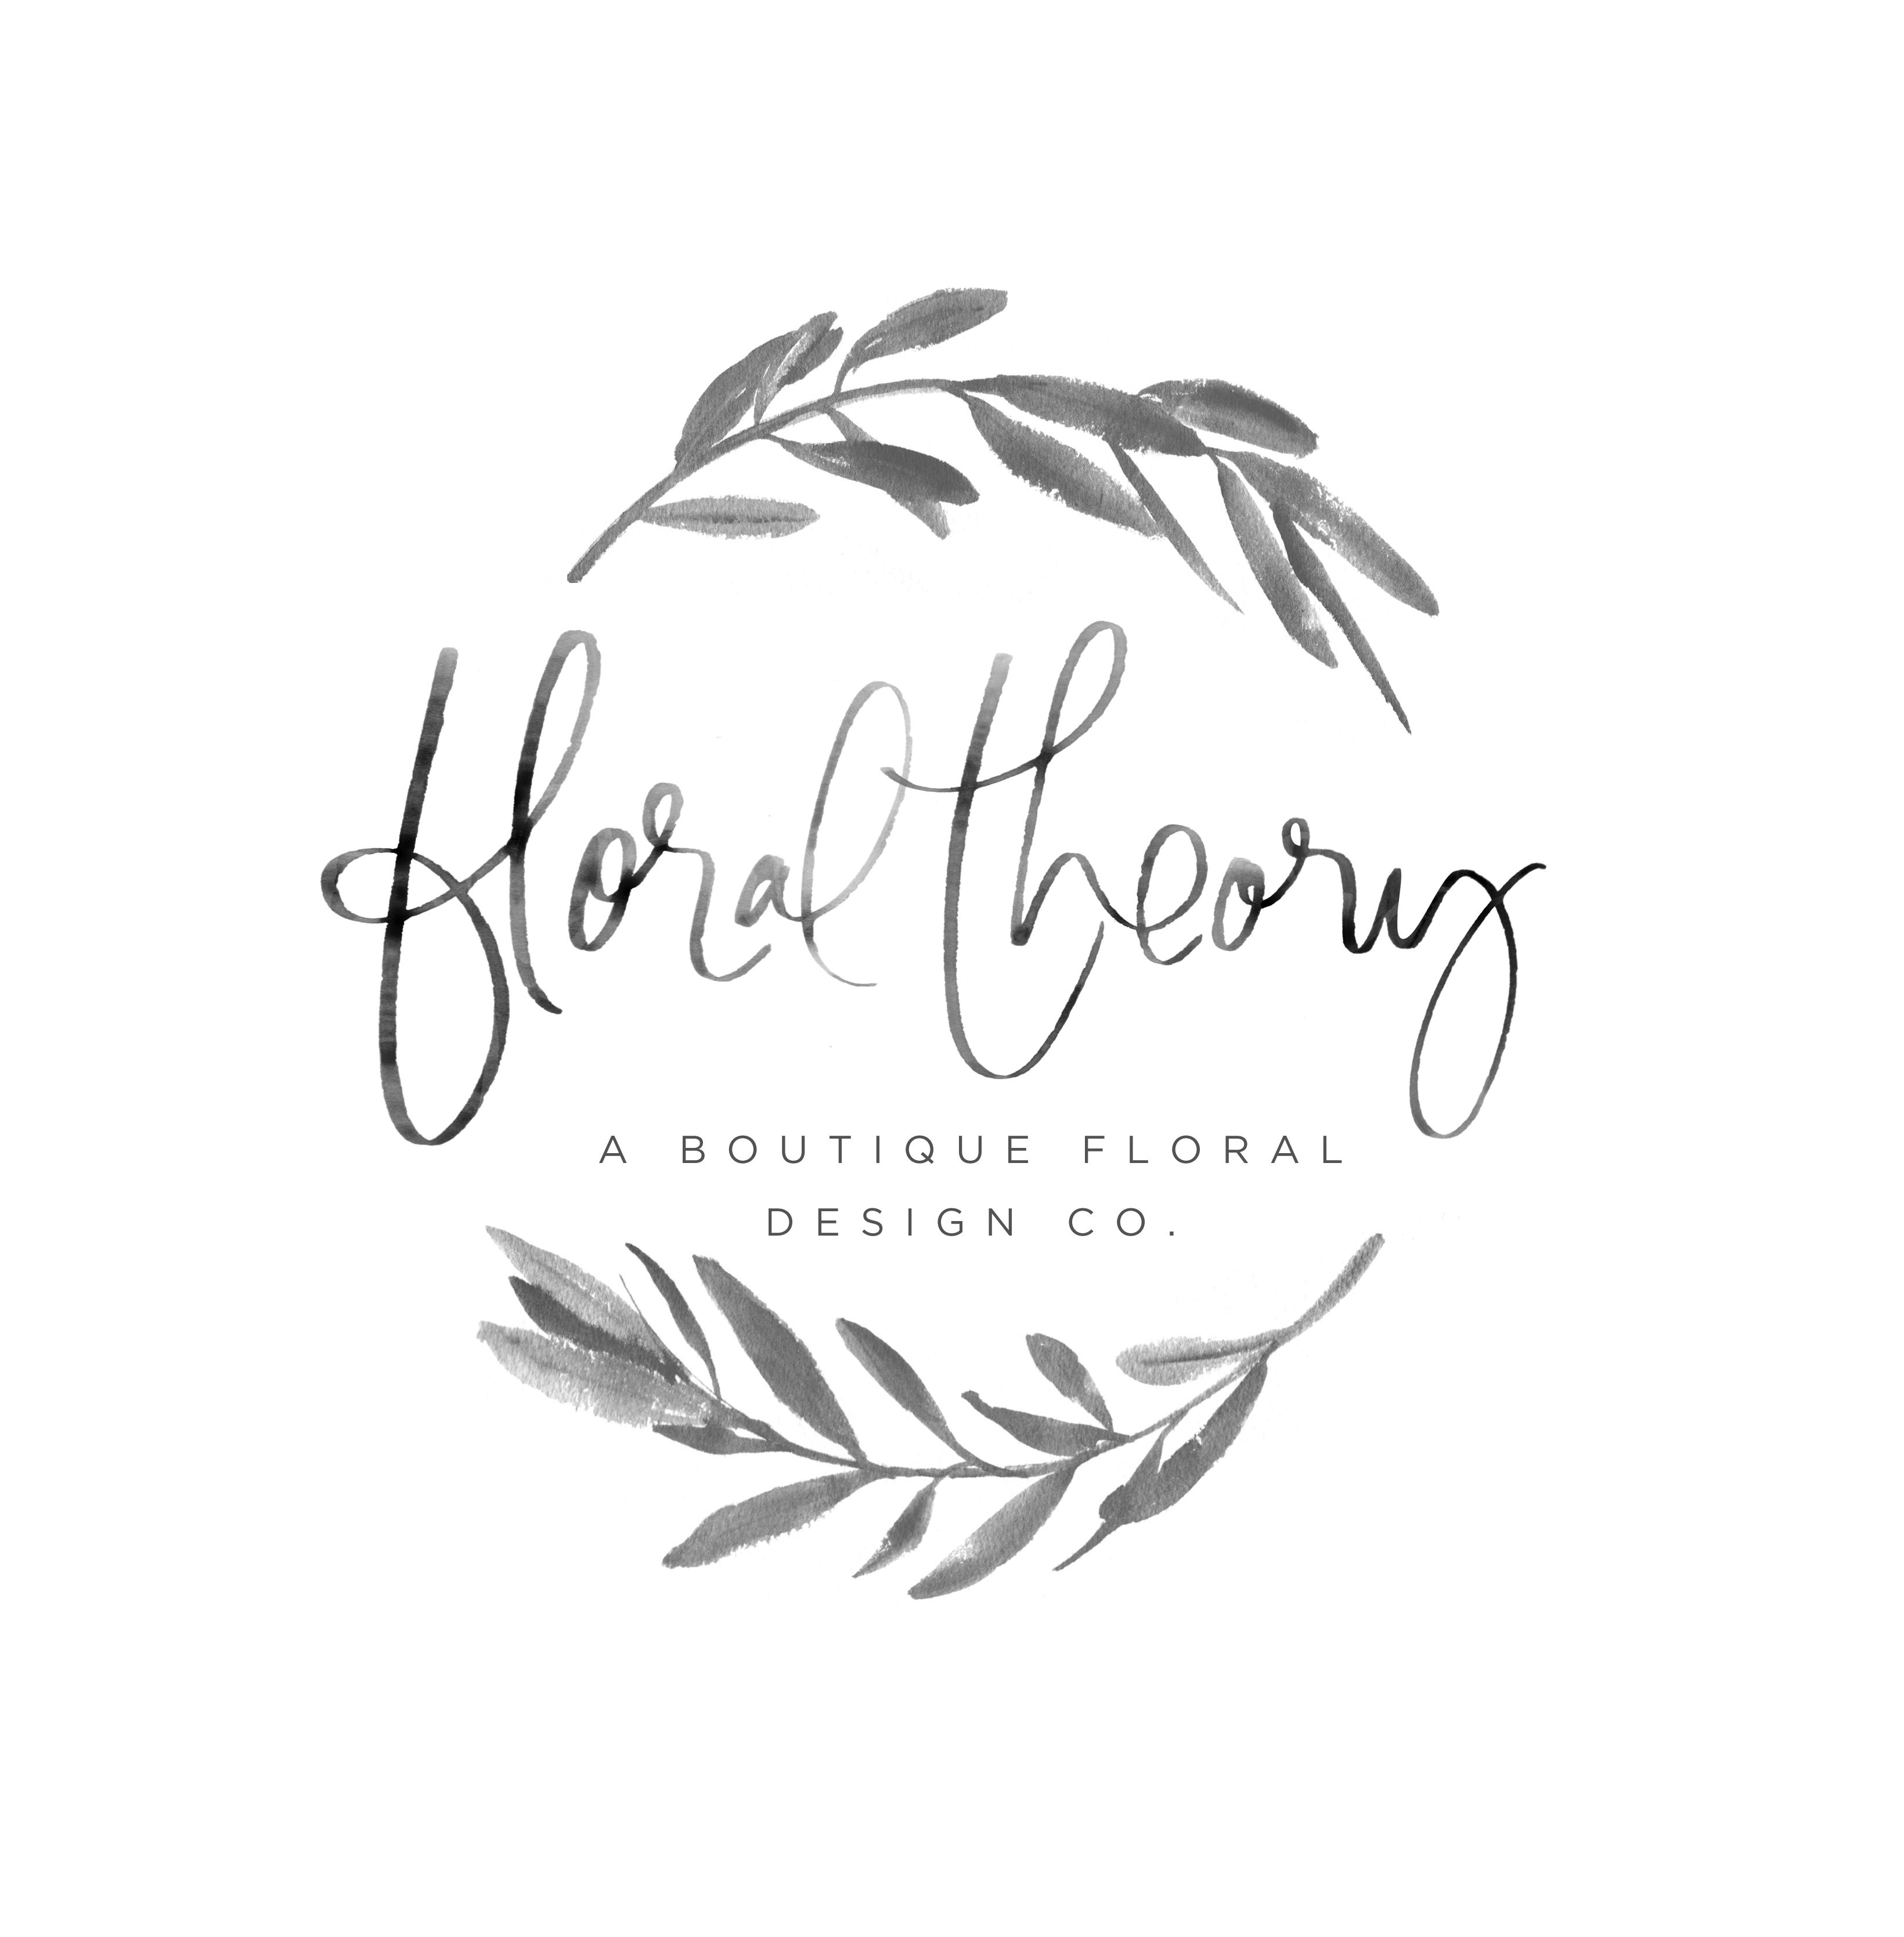 Floral Theory Grayscale Logo